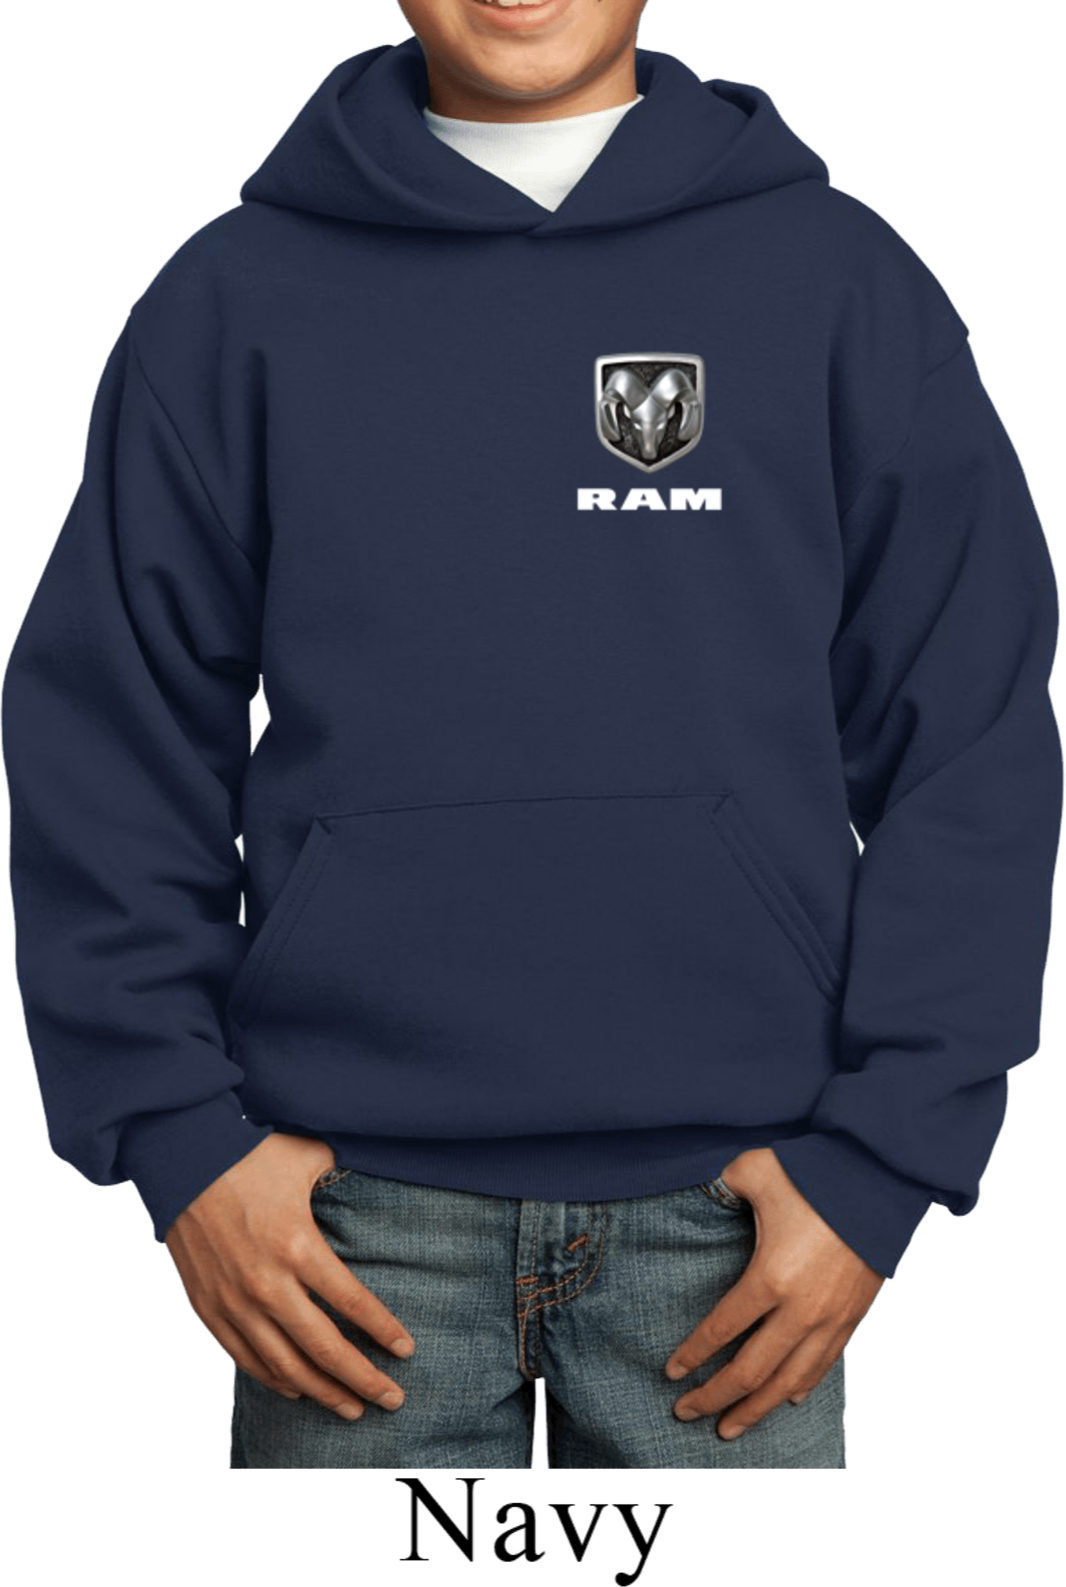 Dodge Ram Hoodie >> Dodge Ram Logo Pocket Print Kids Hoody - Dodge Ram Logo Pocket Print Kids Shirts